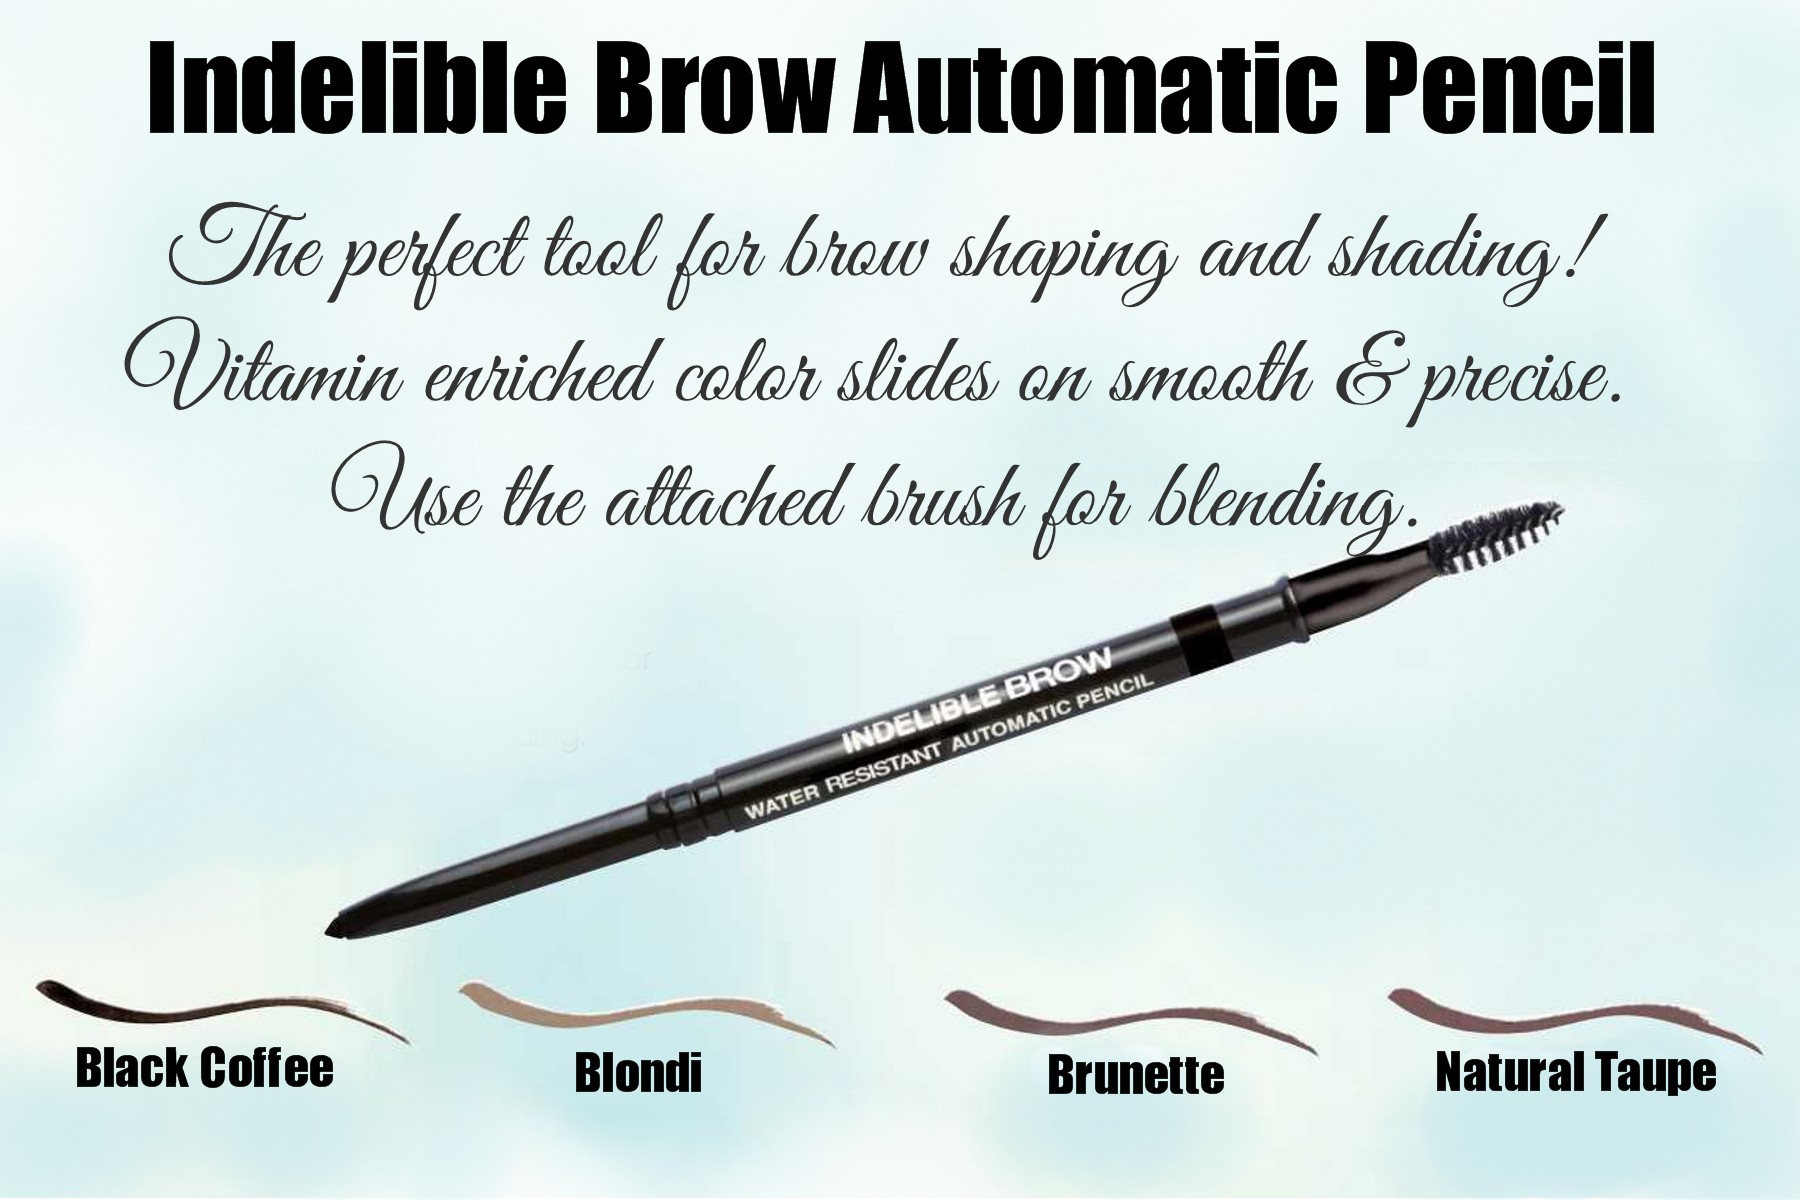 Pre-Order Indelible Brow Automatic Pencil with Blending Brush